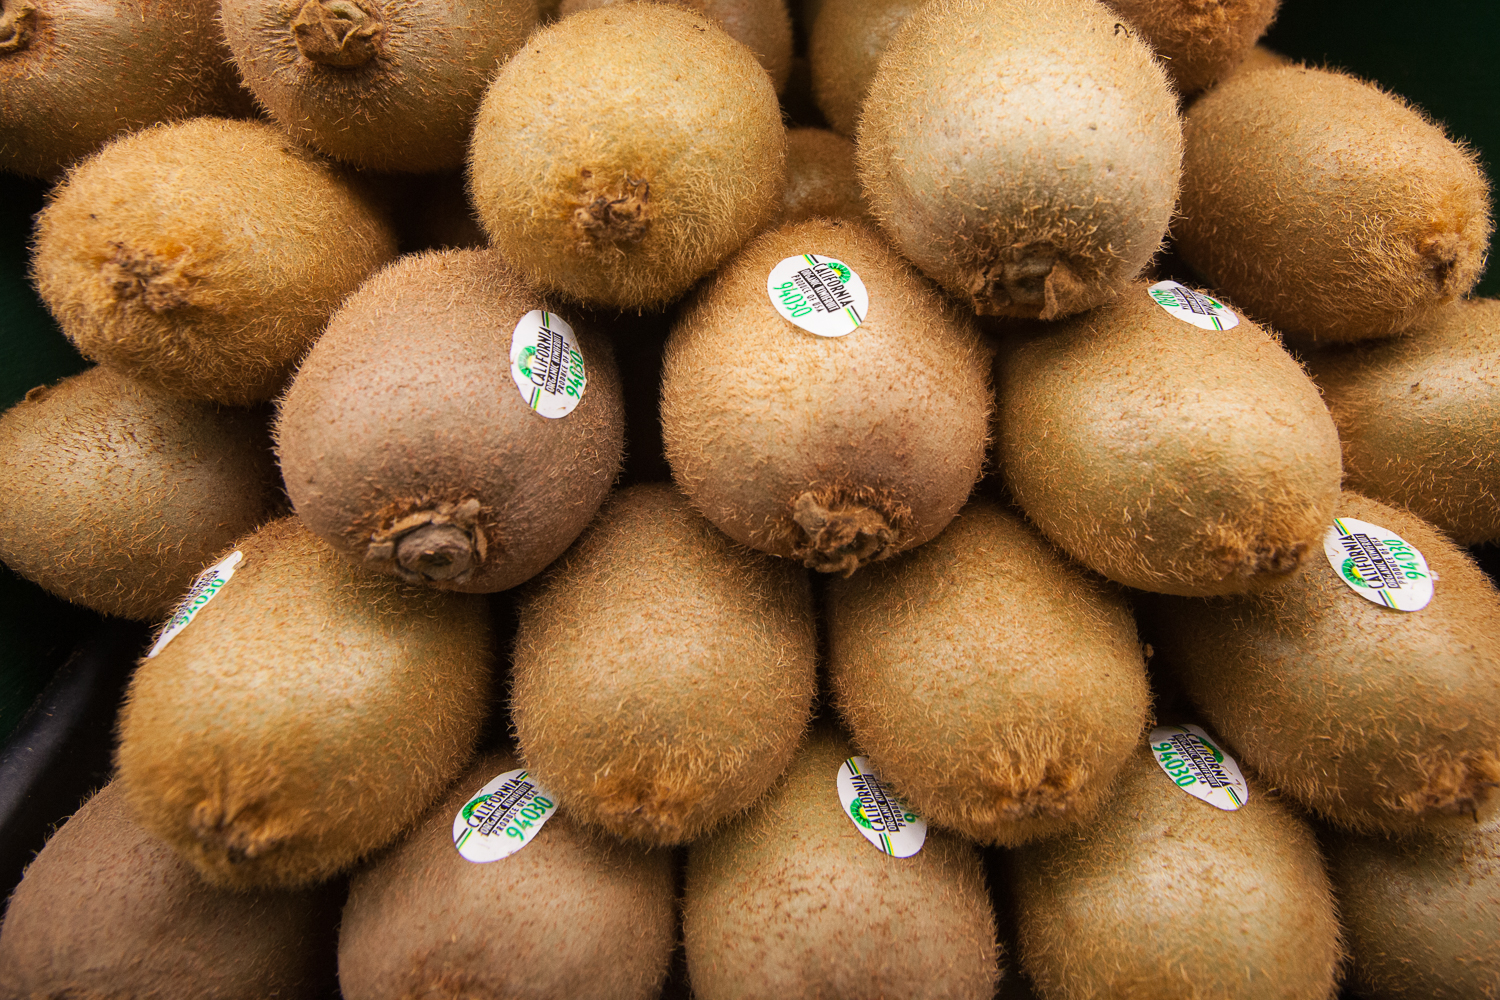 Kiwi Fruit from Mana Foods Produce Department